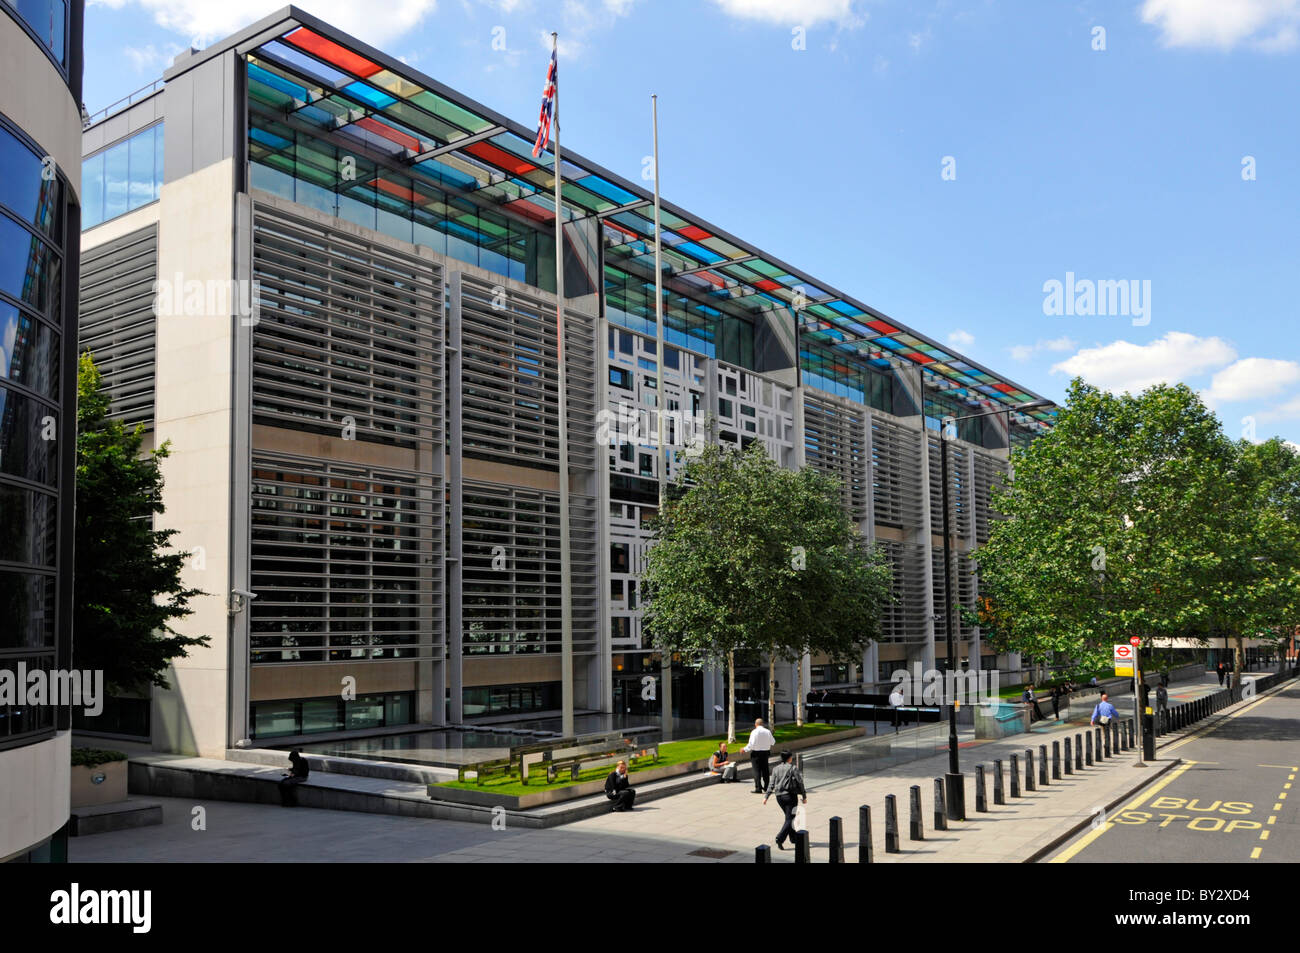 The Home Office Government building London - Stock Image